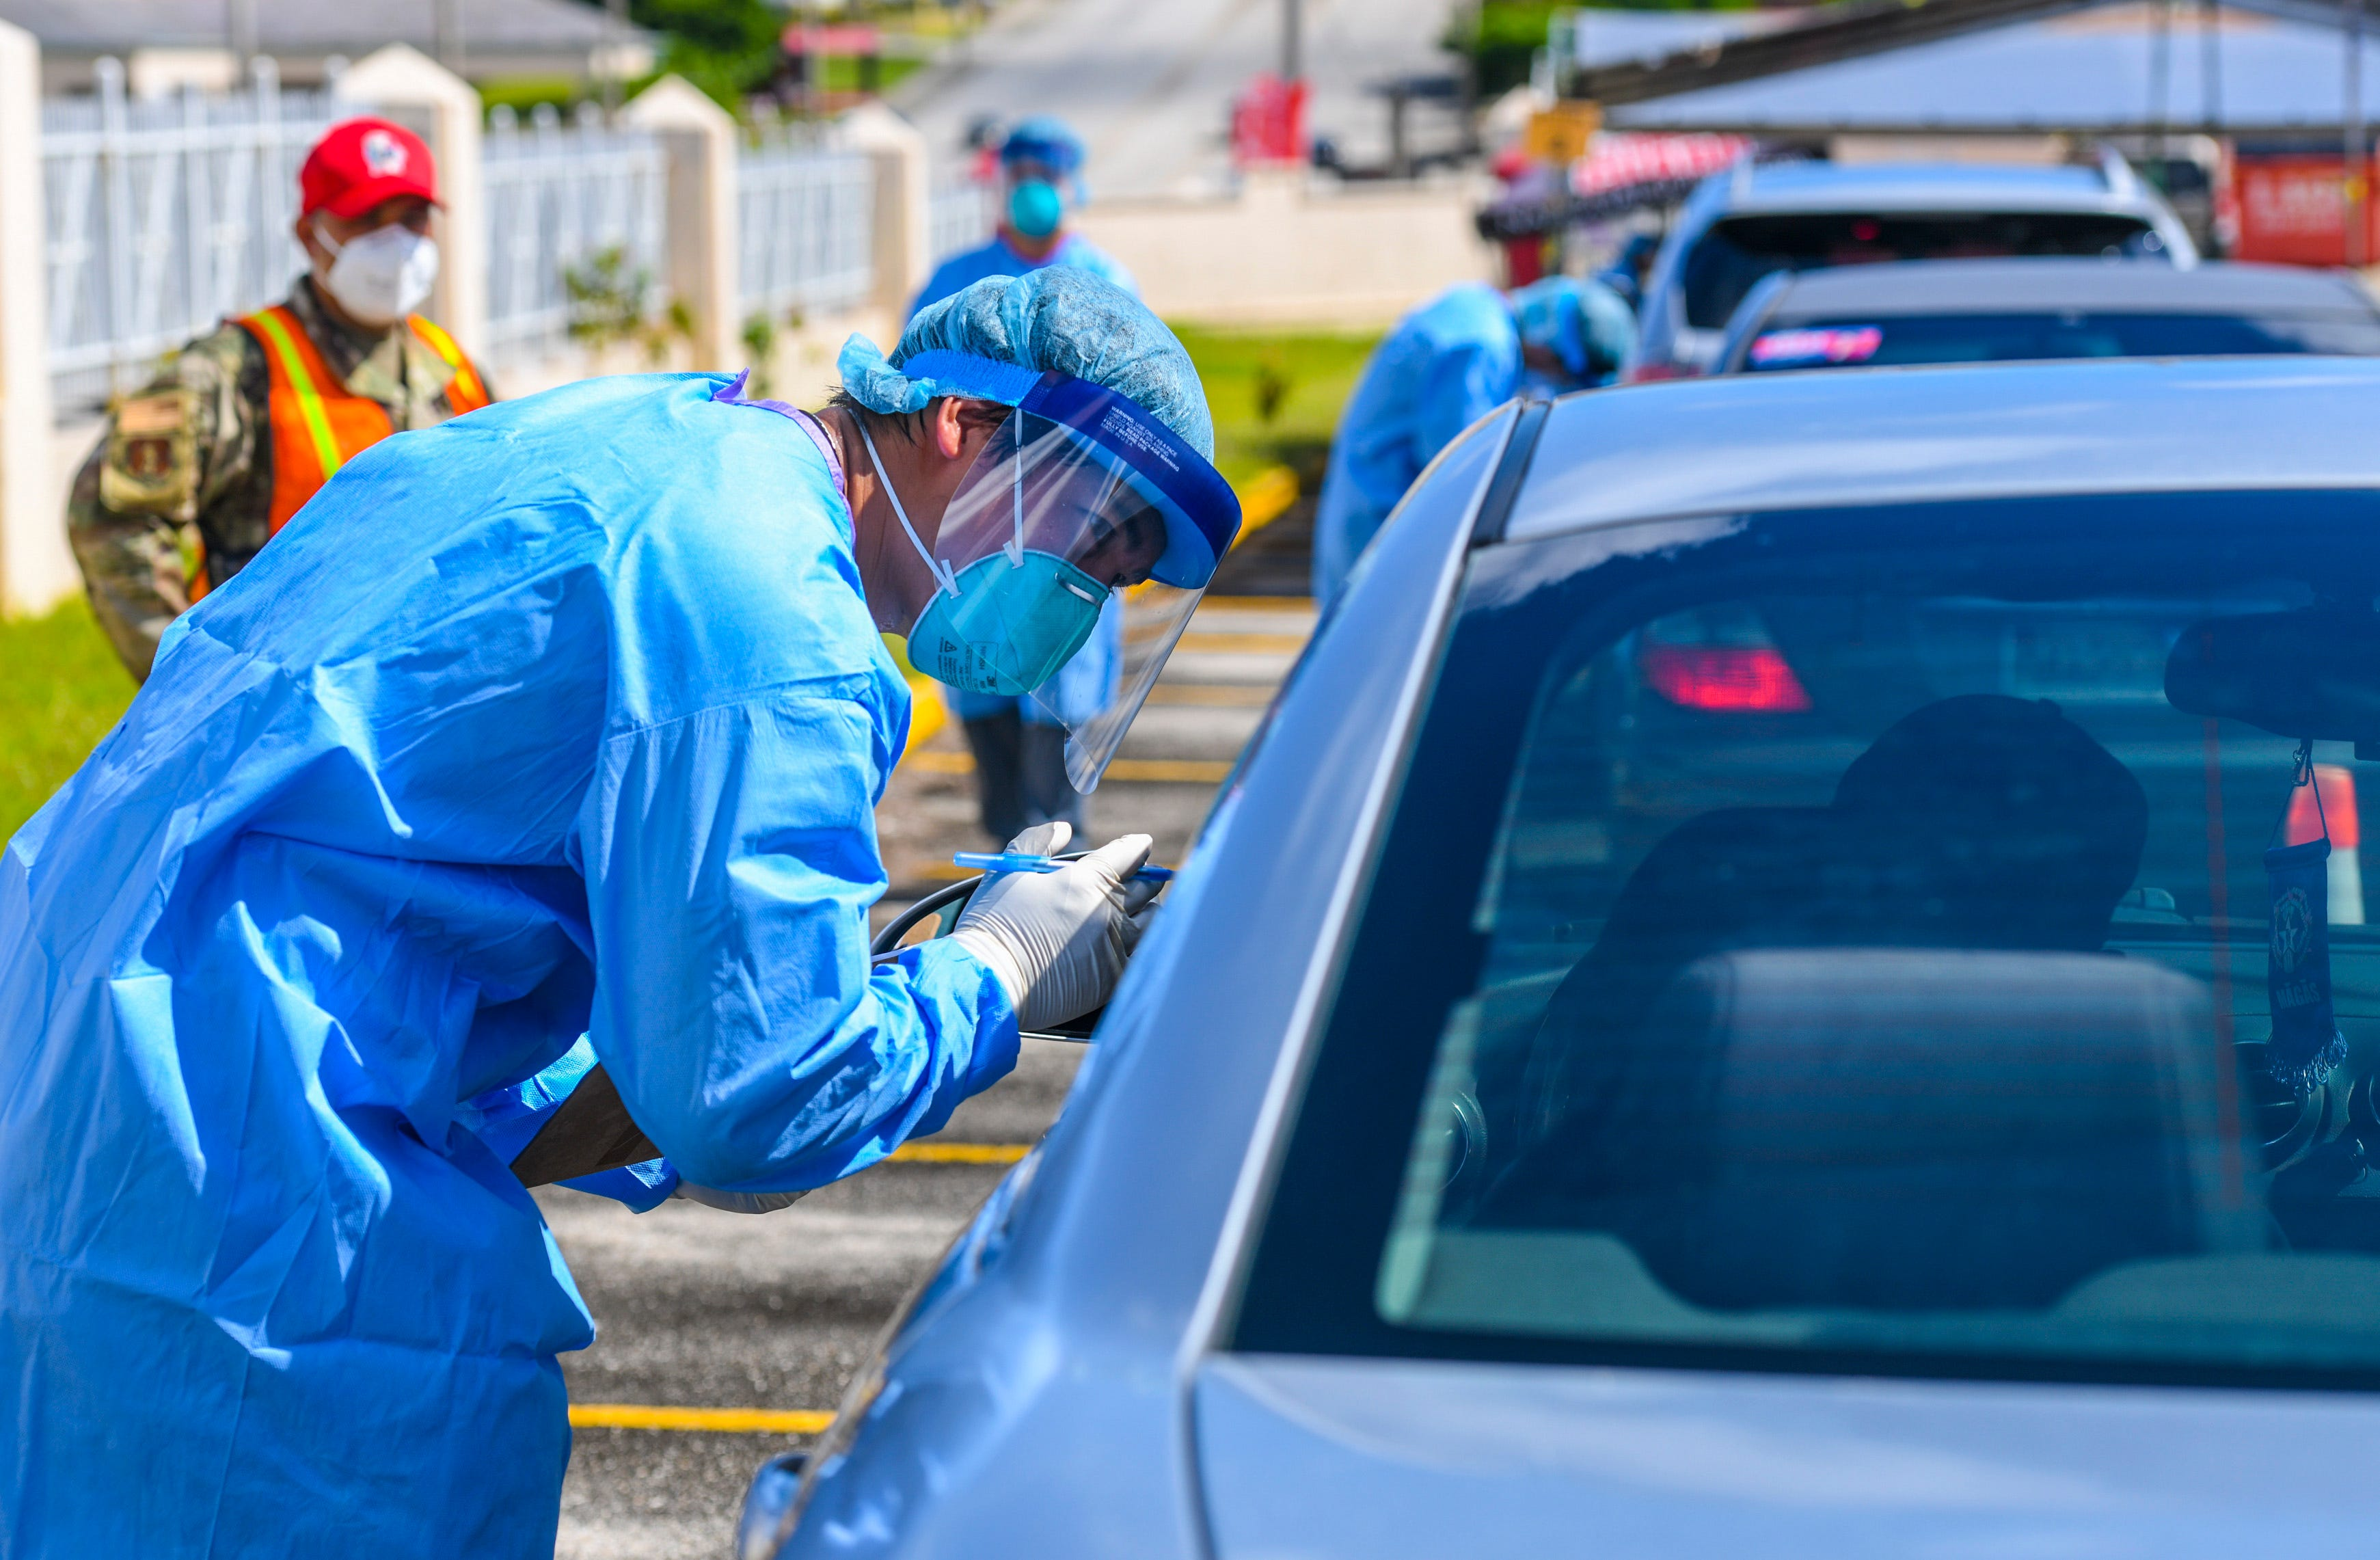 Volunteer Kai Akimoto records information gathered from a driver requesting to be tested for COVID-19 during a drive-through extended outreach in the parking lot of Tamuning Elementary School on Wednesday, July 22, 2020. Walk-up testing was also offered to residents at the site.